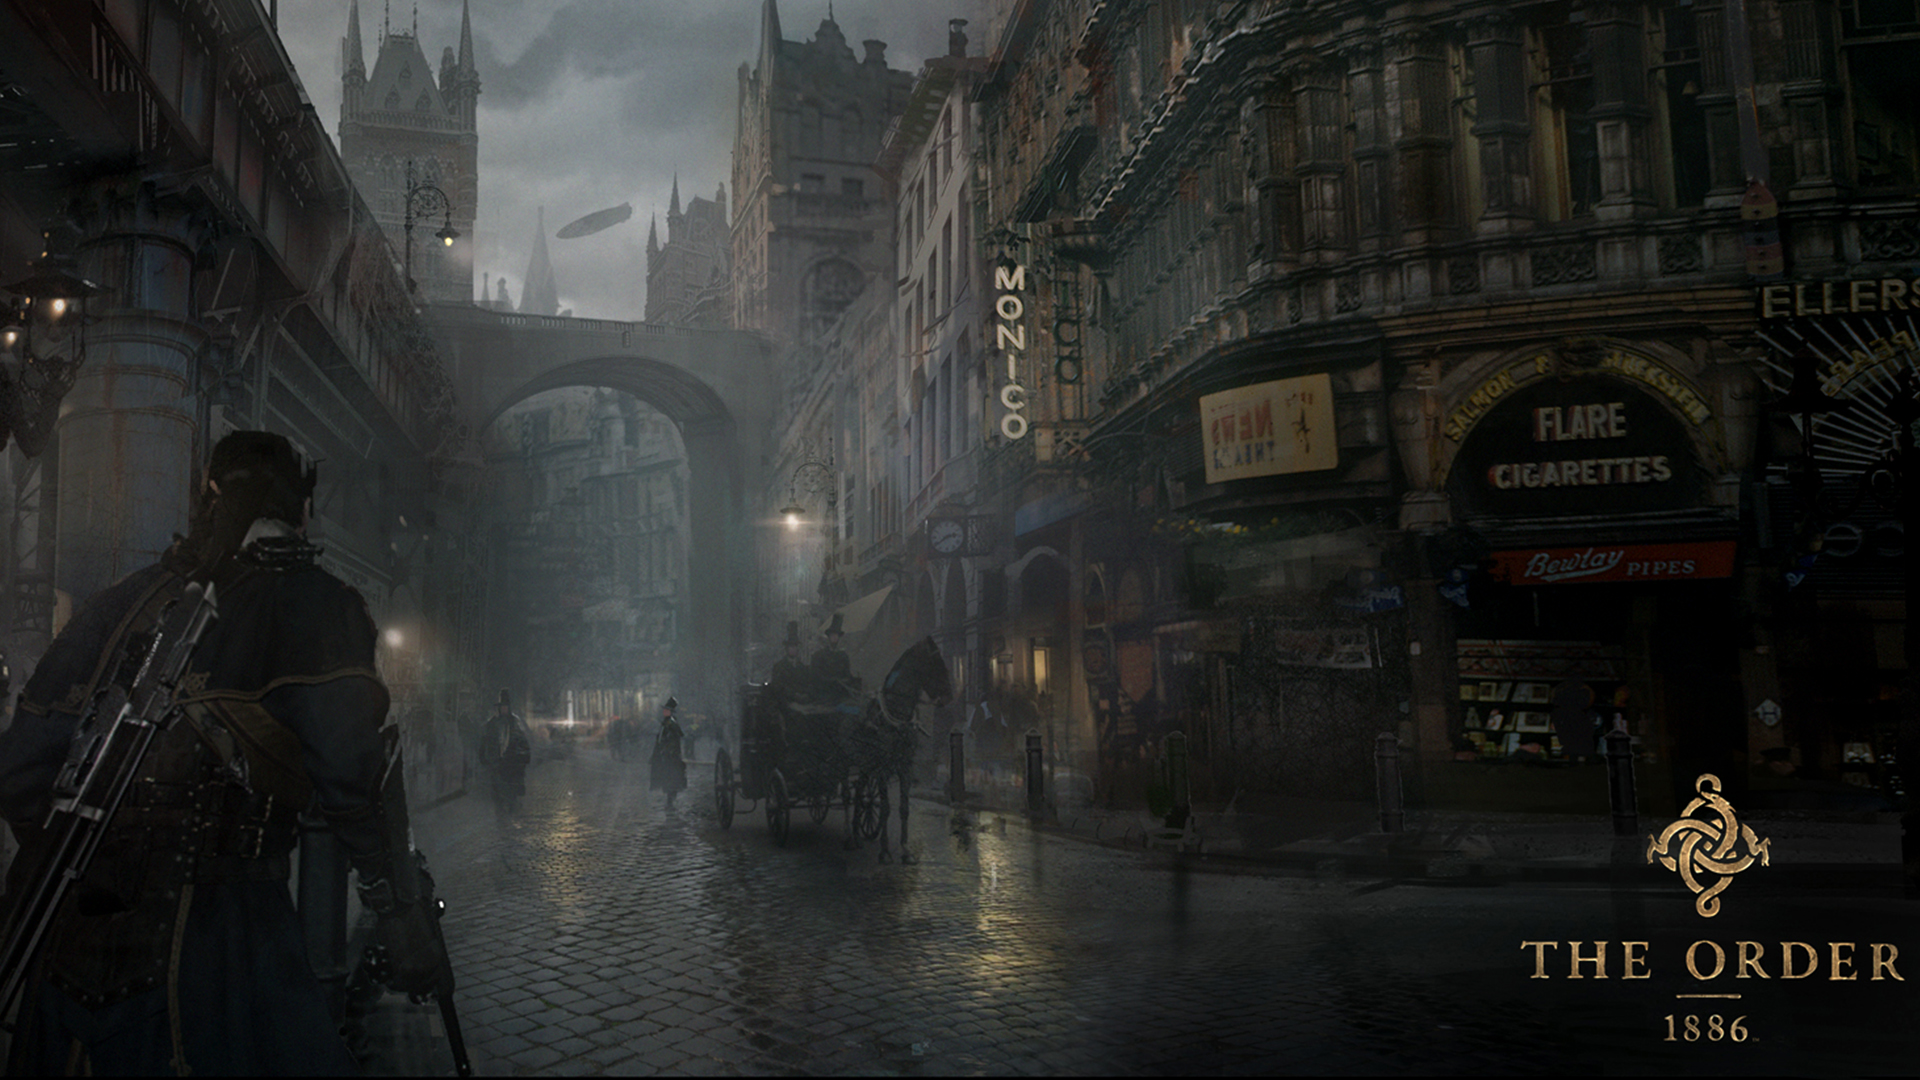 the order 1886 backgrounds